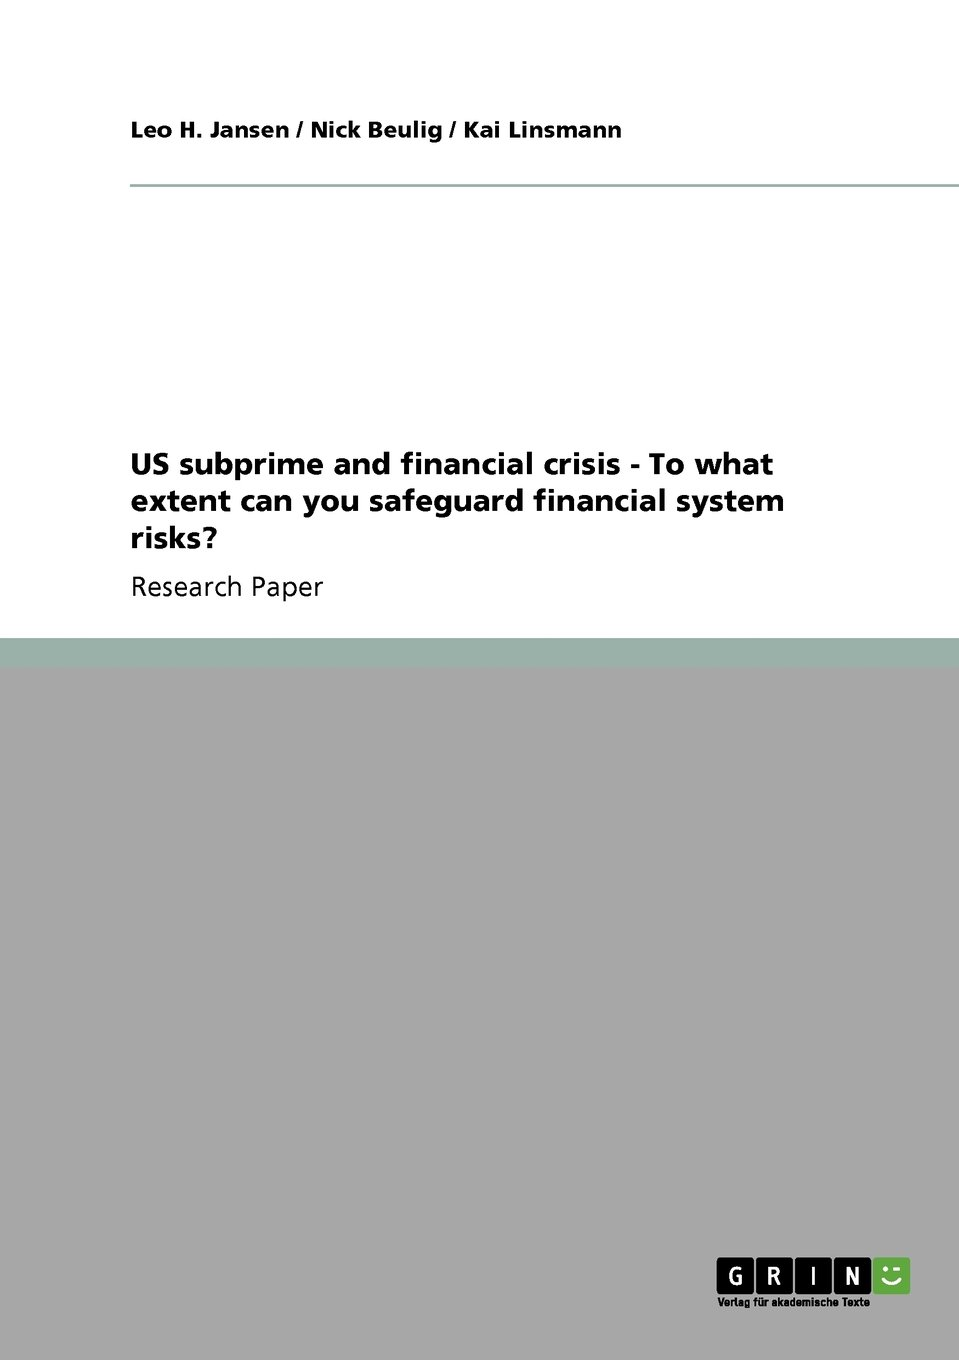 US subprime and financial crisis - To what extent can you safeguard financial system risks? PDF